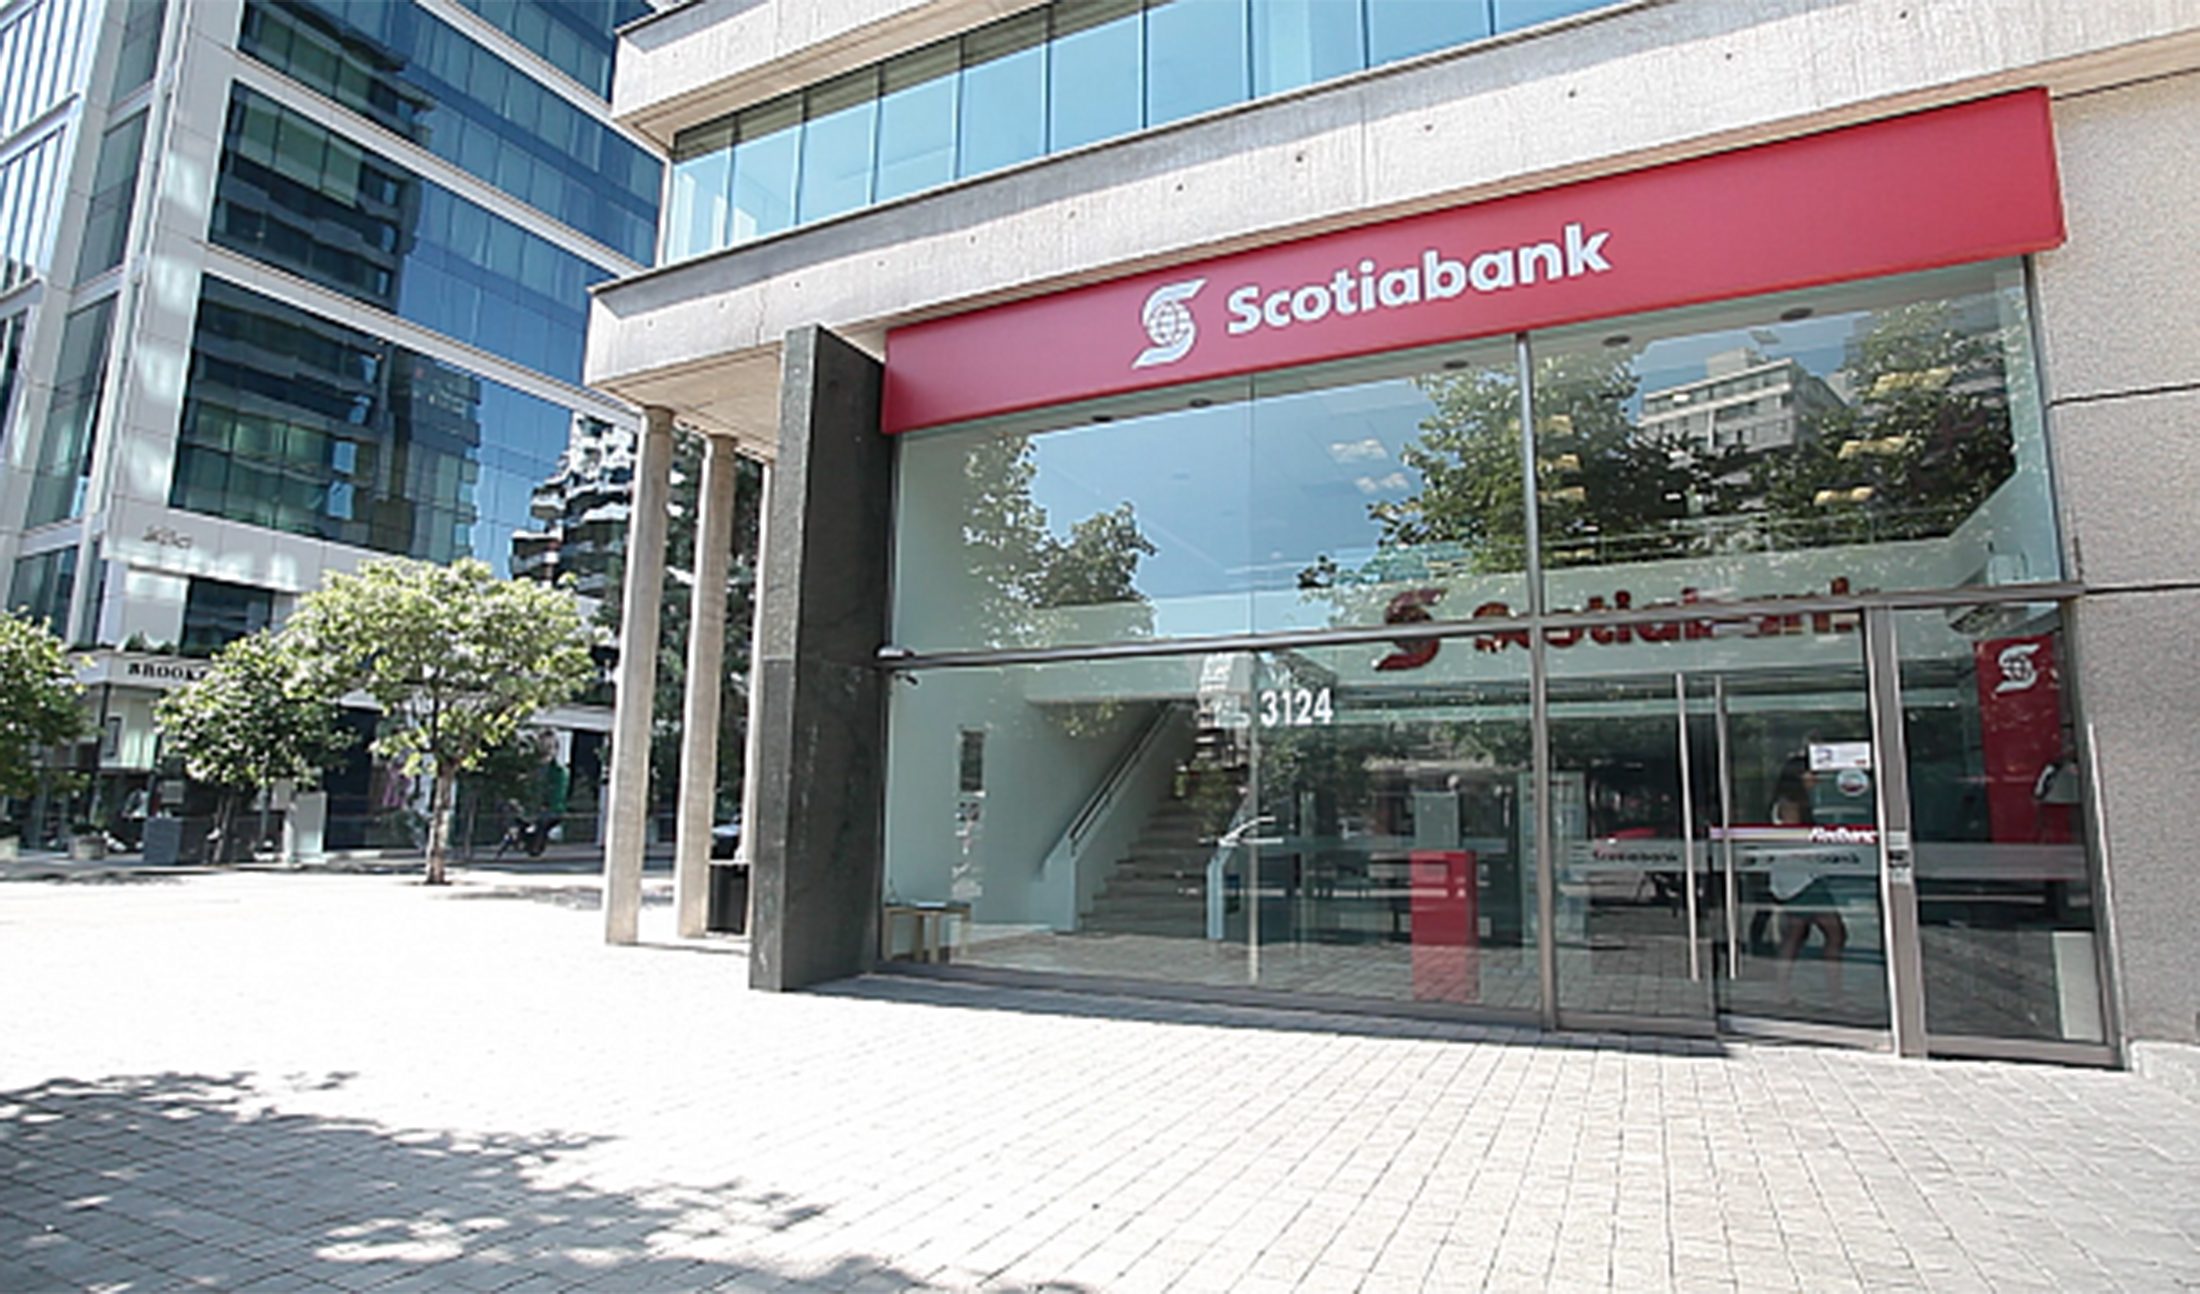 Scotiabank-Chile